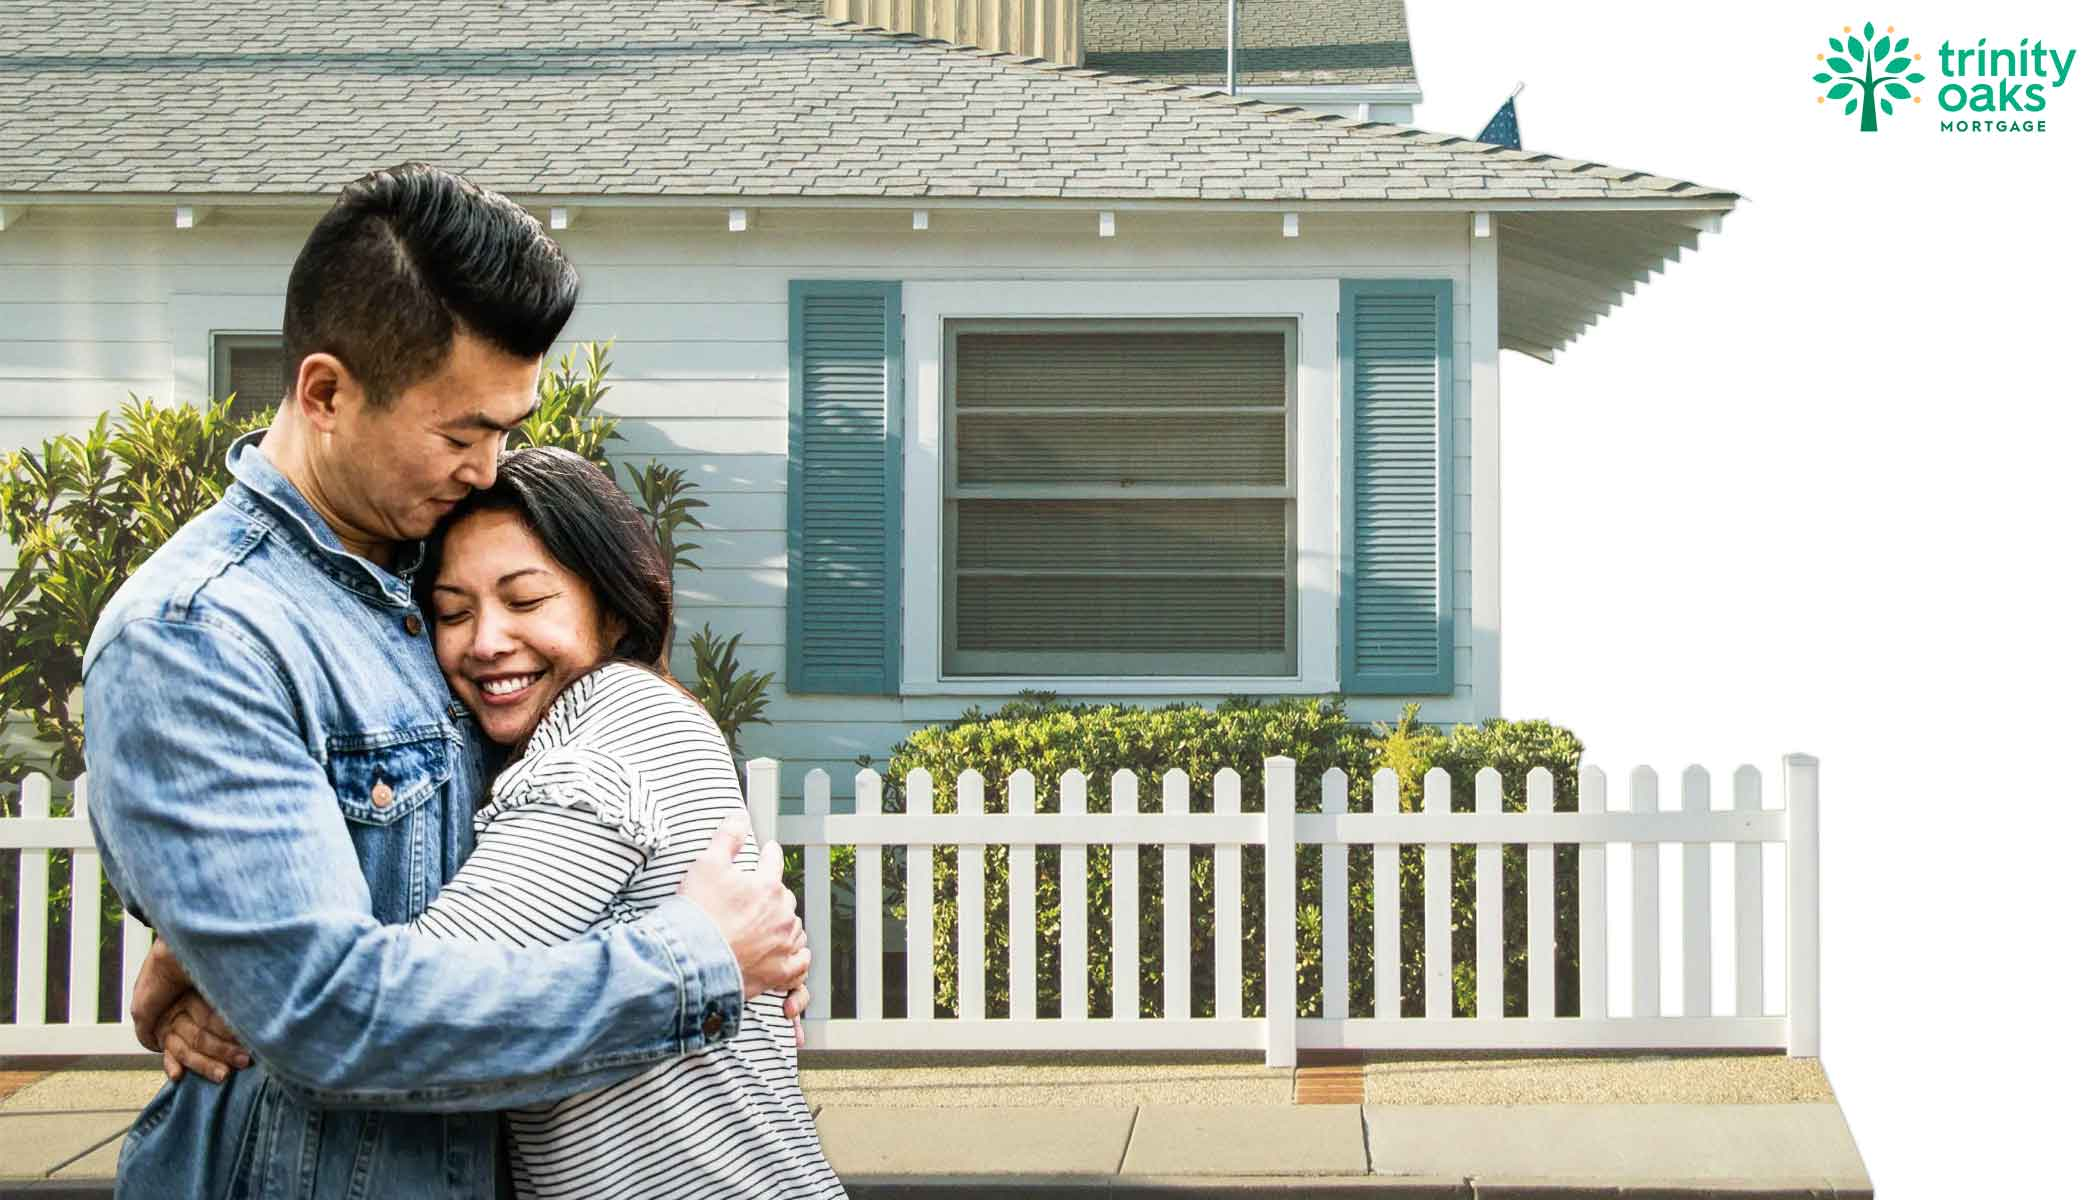 Will 2021 Be a Good Year to Buy a Home in the DFW Area?